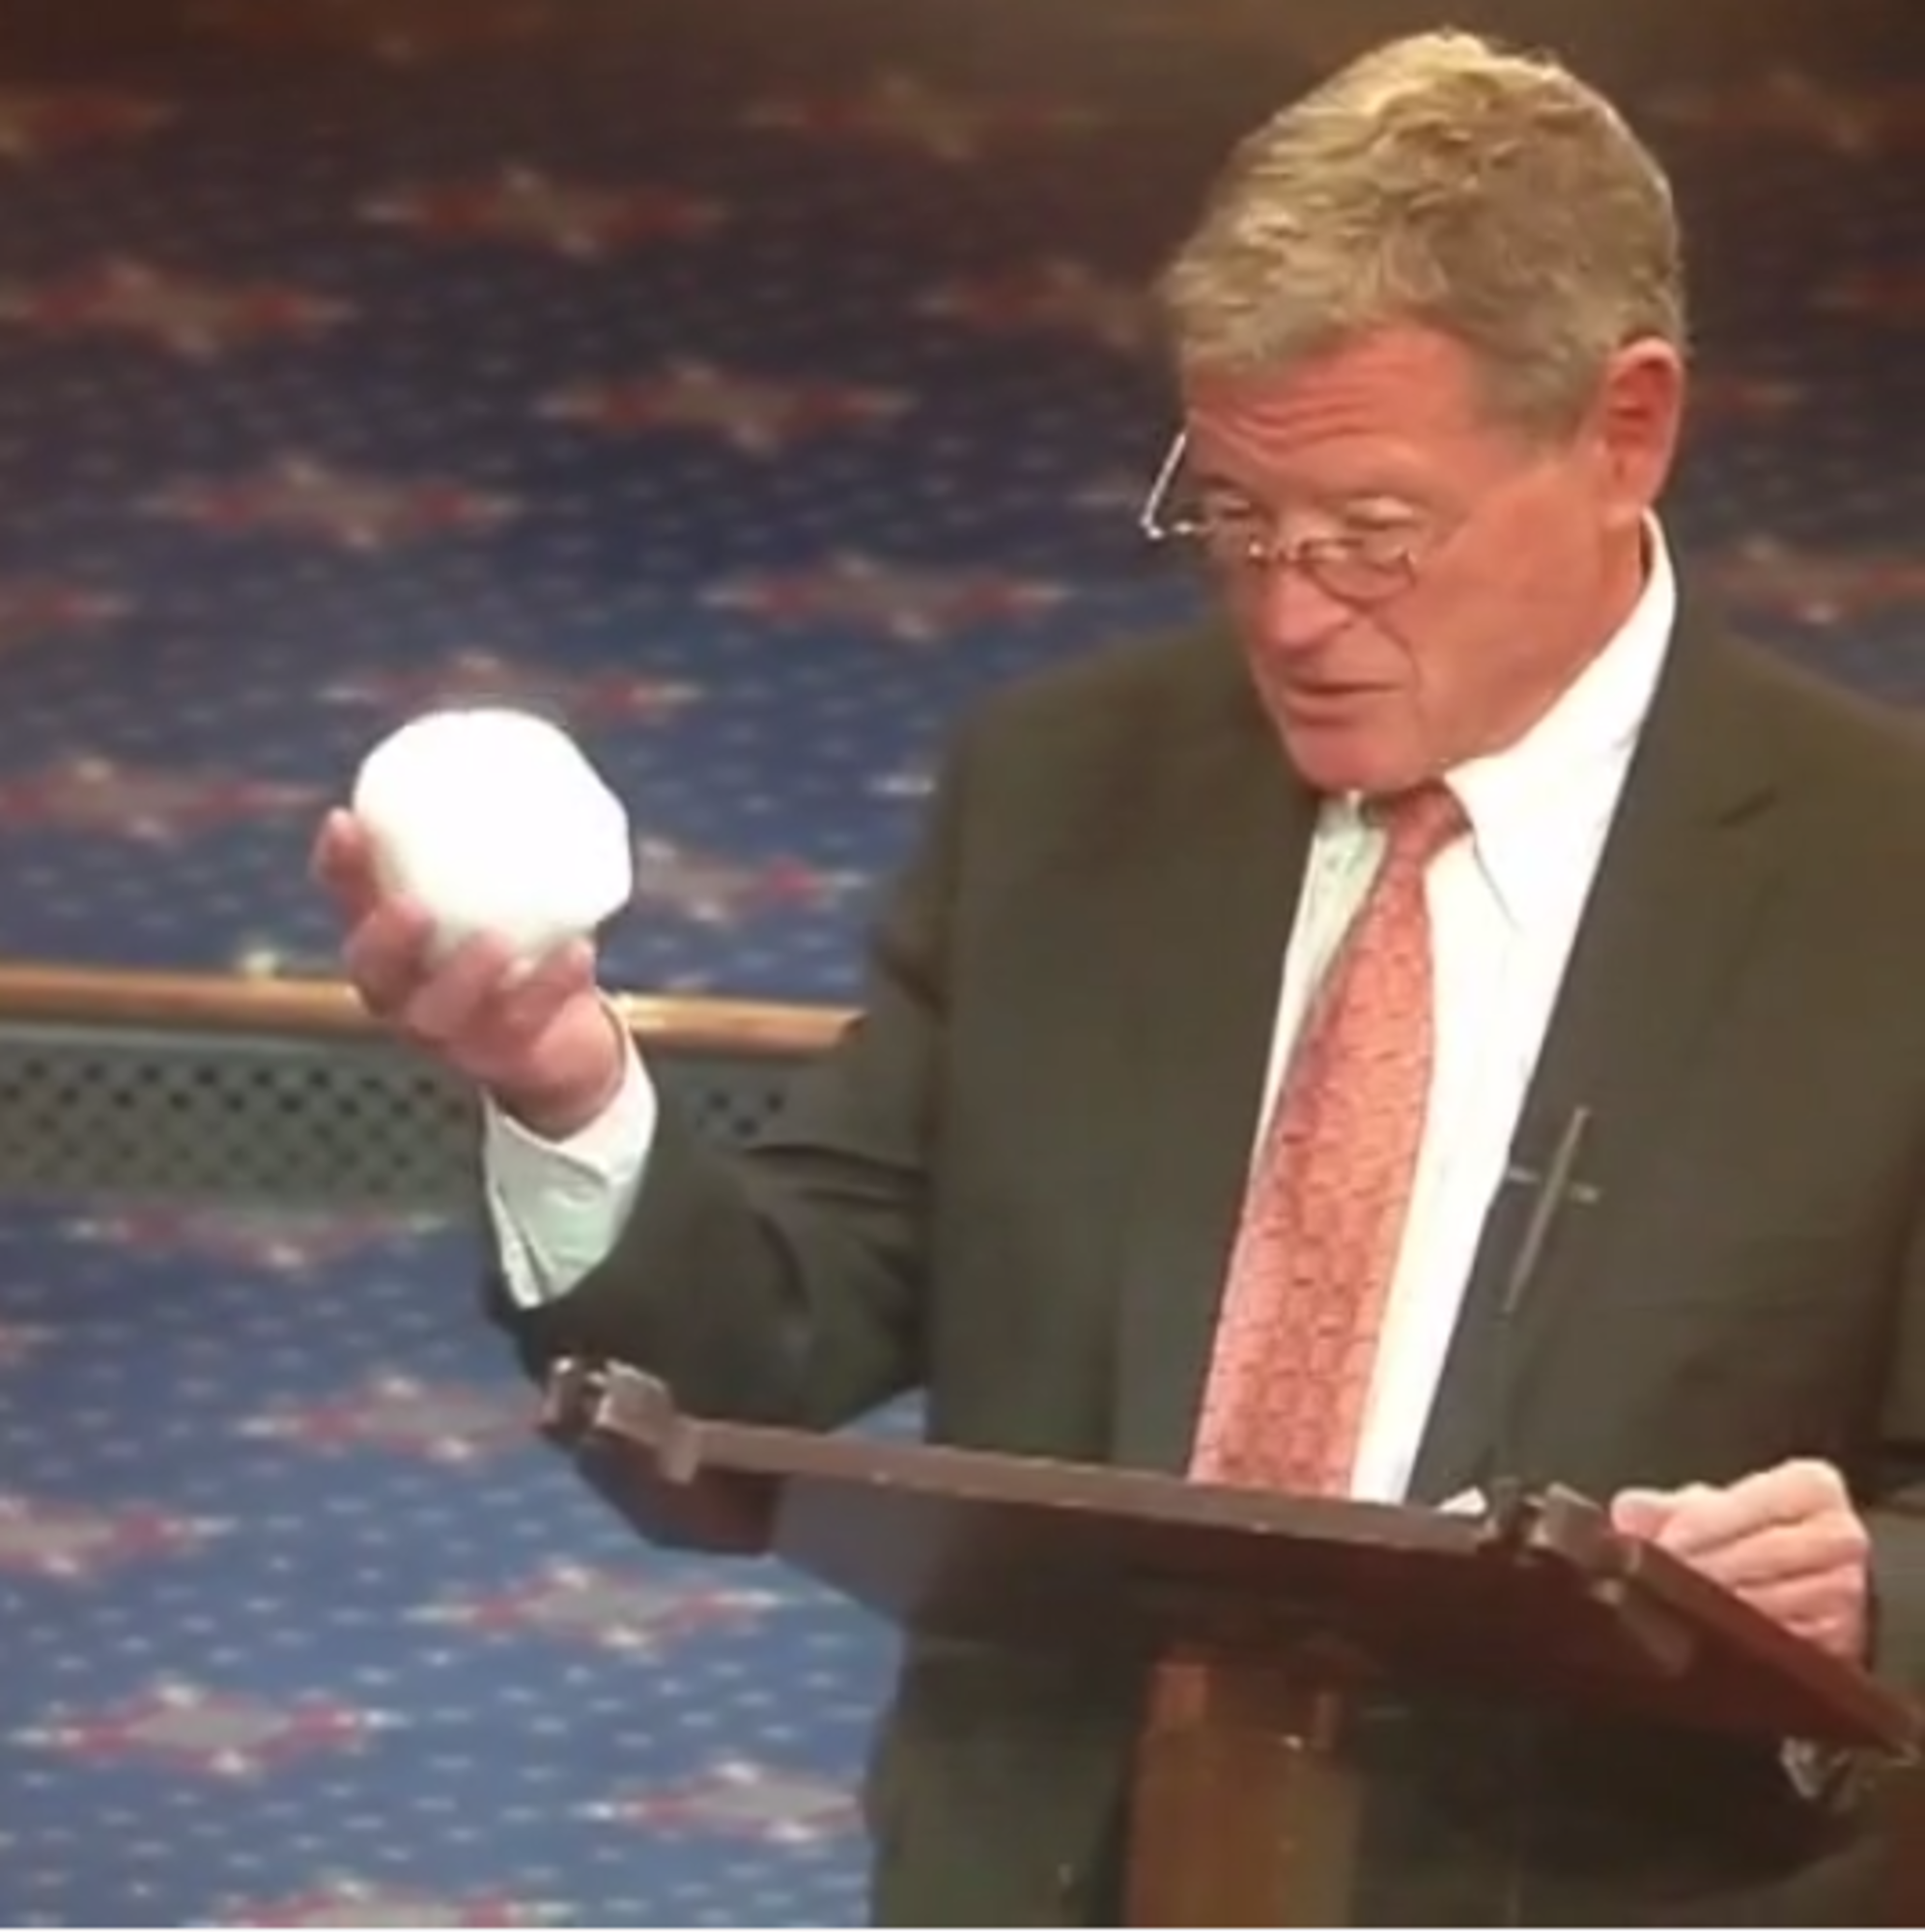 snowball in senate